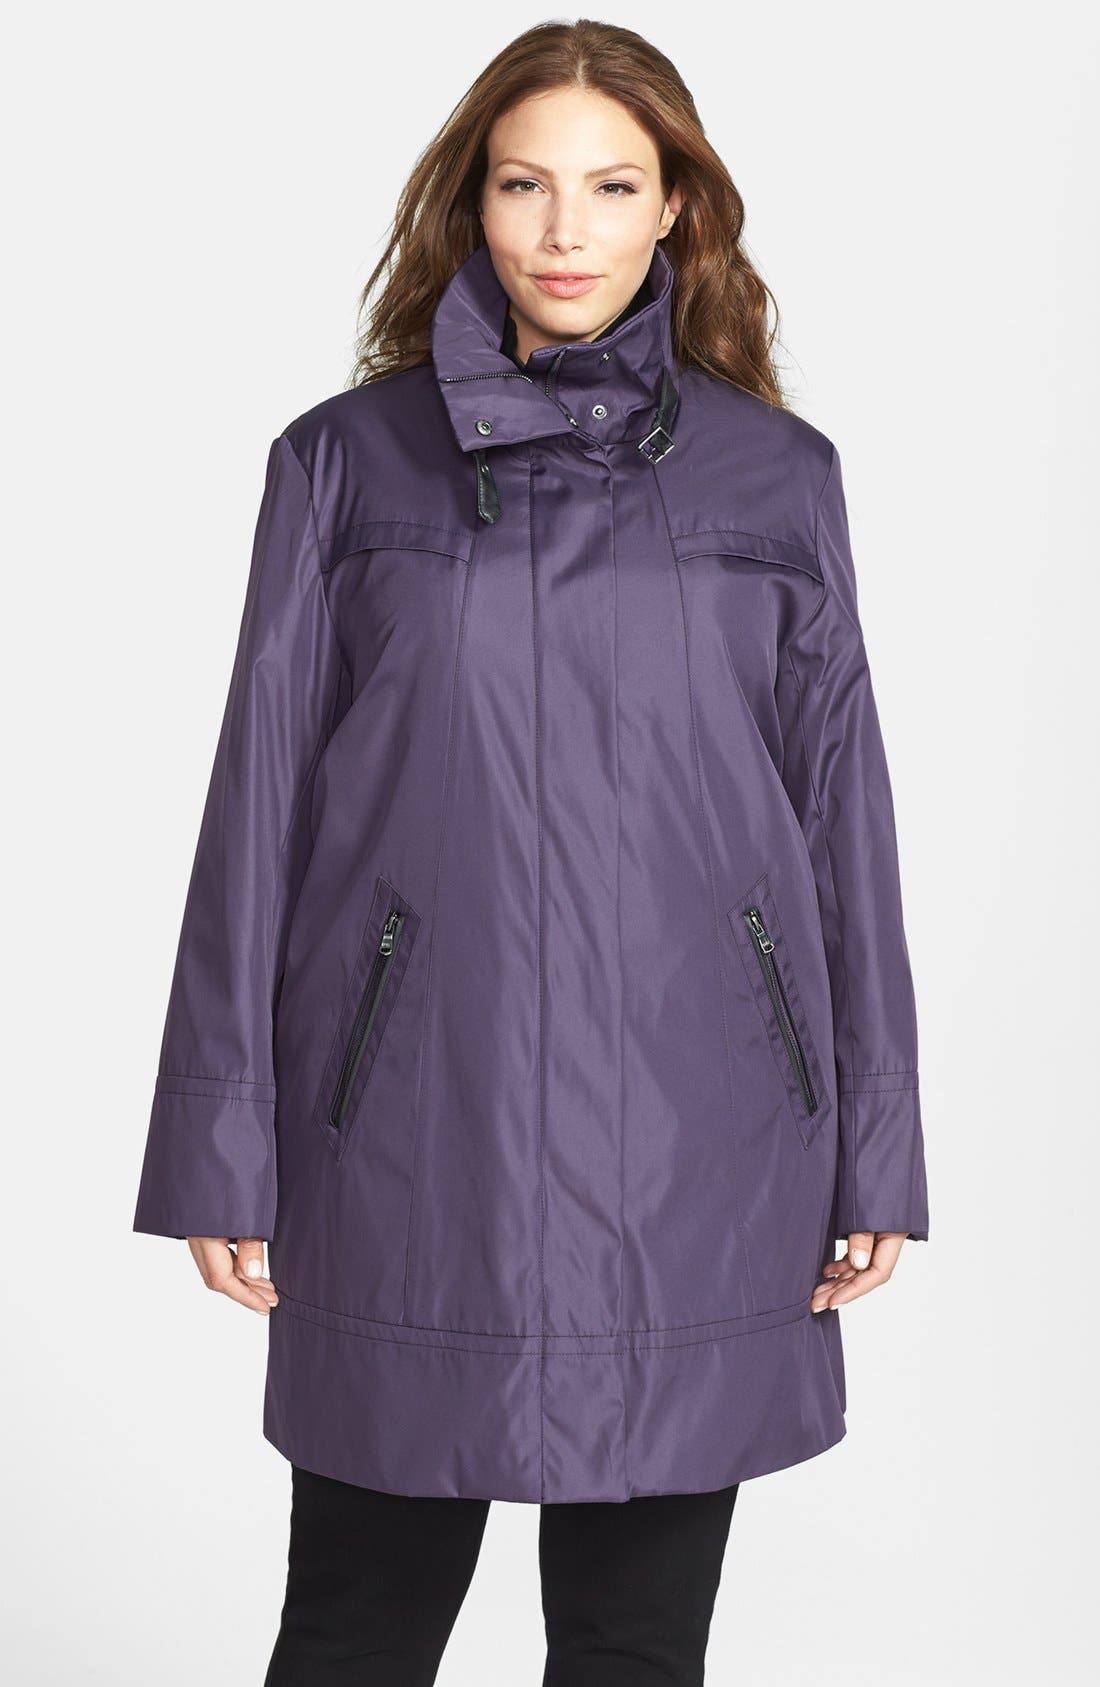 Main Image - Marc New York by Andrew Marc 'Carmine' A-Line Raincoat (Plus Size)